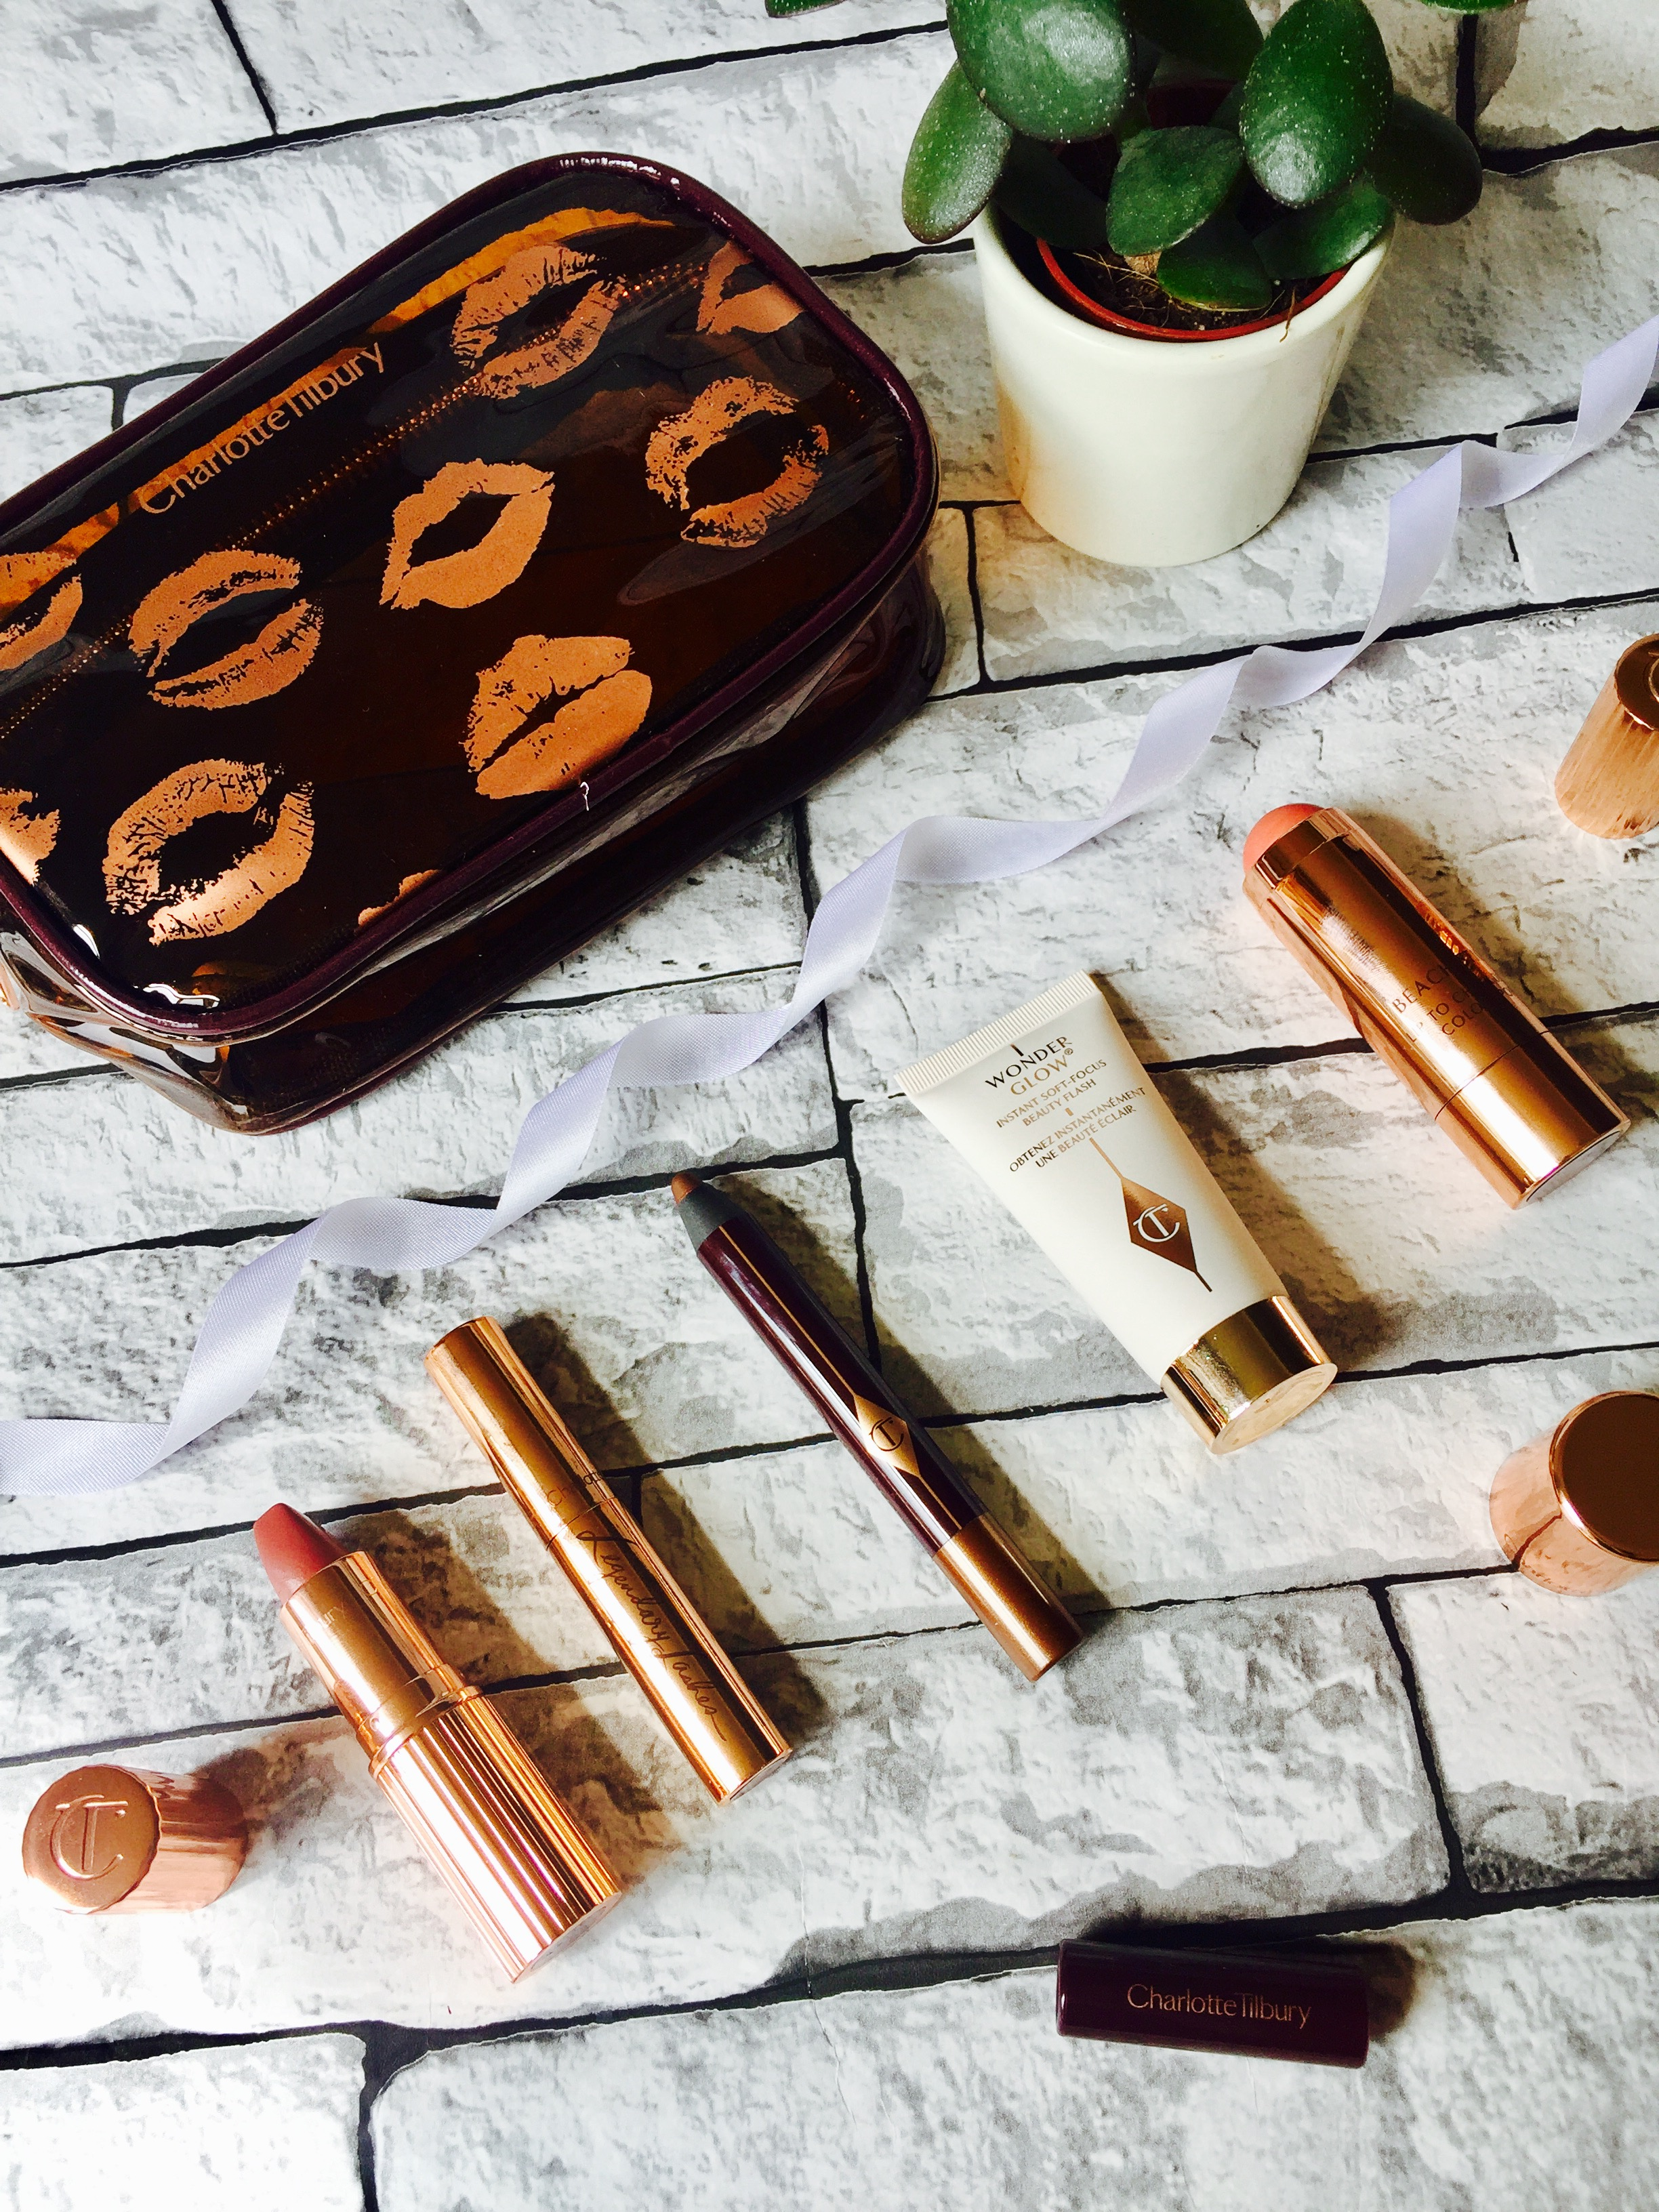 High End Beauty Haul Spectrum Collections Charlotte Tilbury Urban Decay Kiehl's Omorovicza Tarte Shape Tape